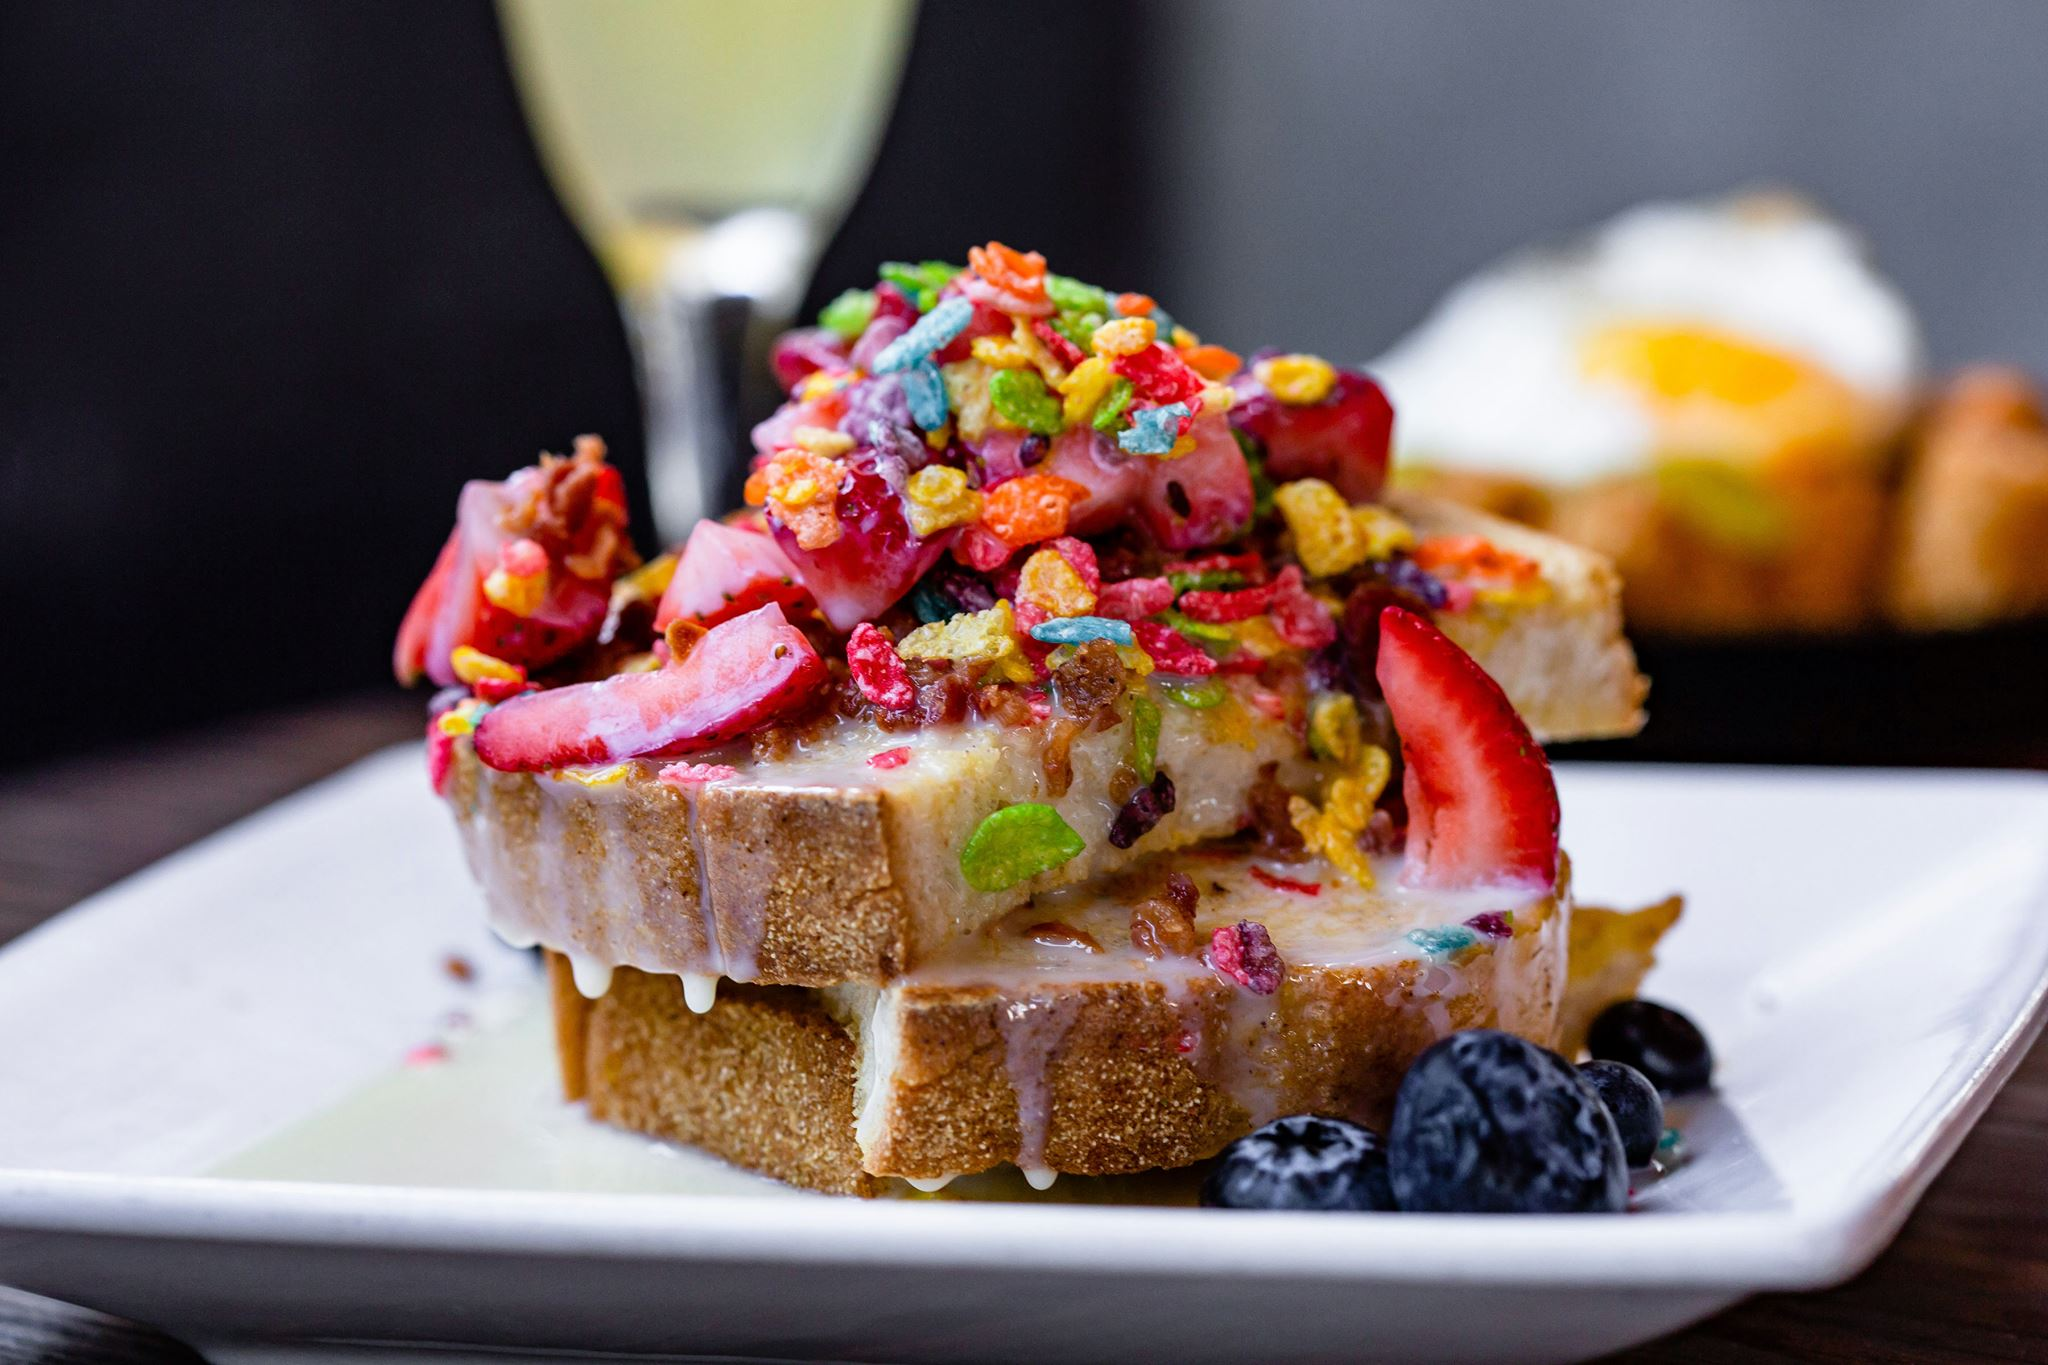 Orange County Brunch Guide - Family Review Guide